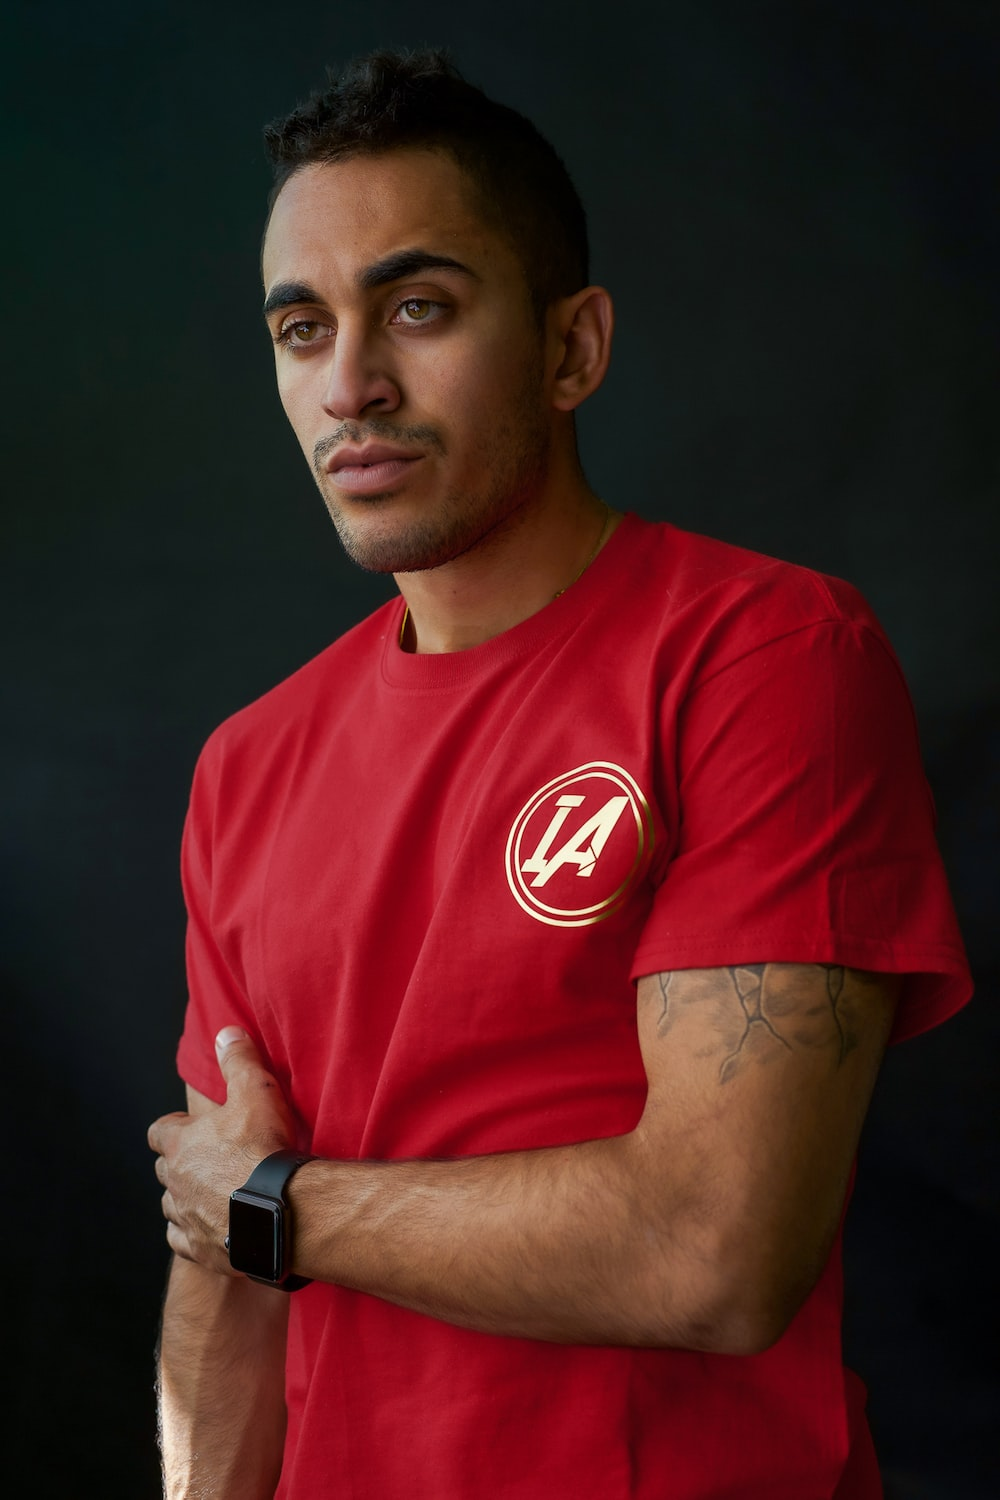 man wearing red with white crew-neck t-shirt standing